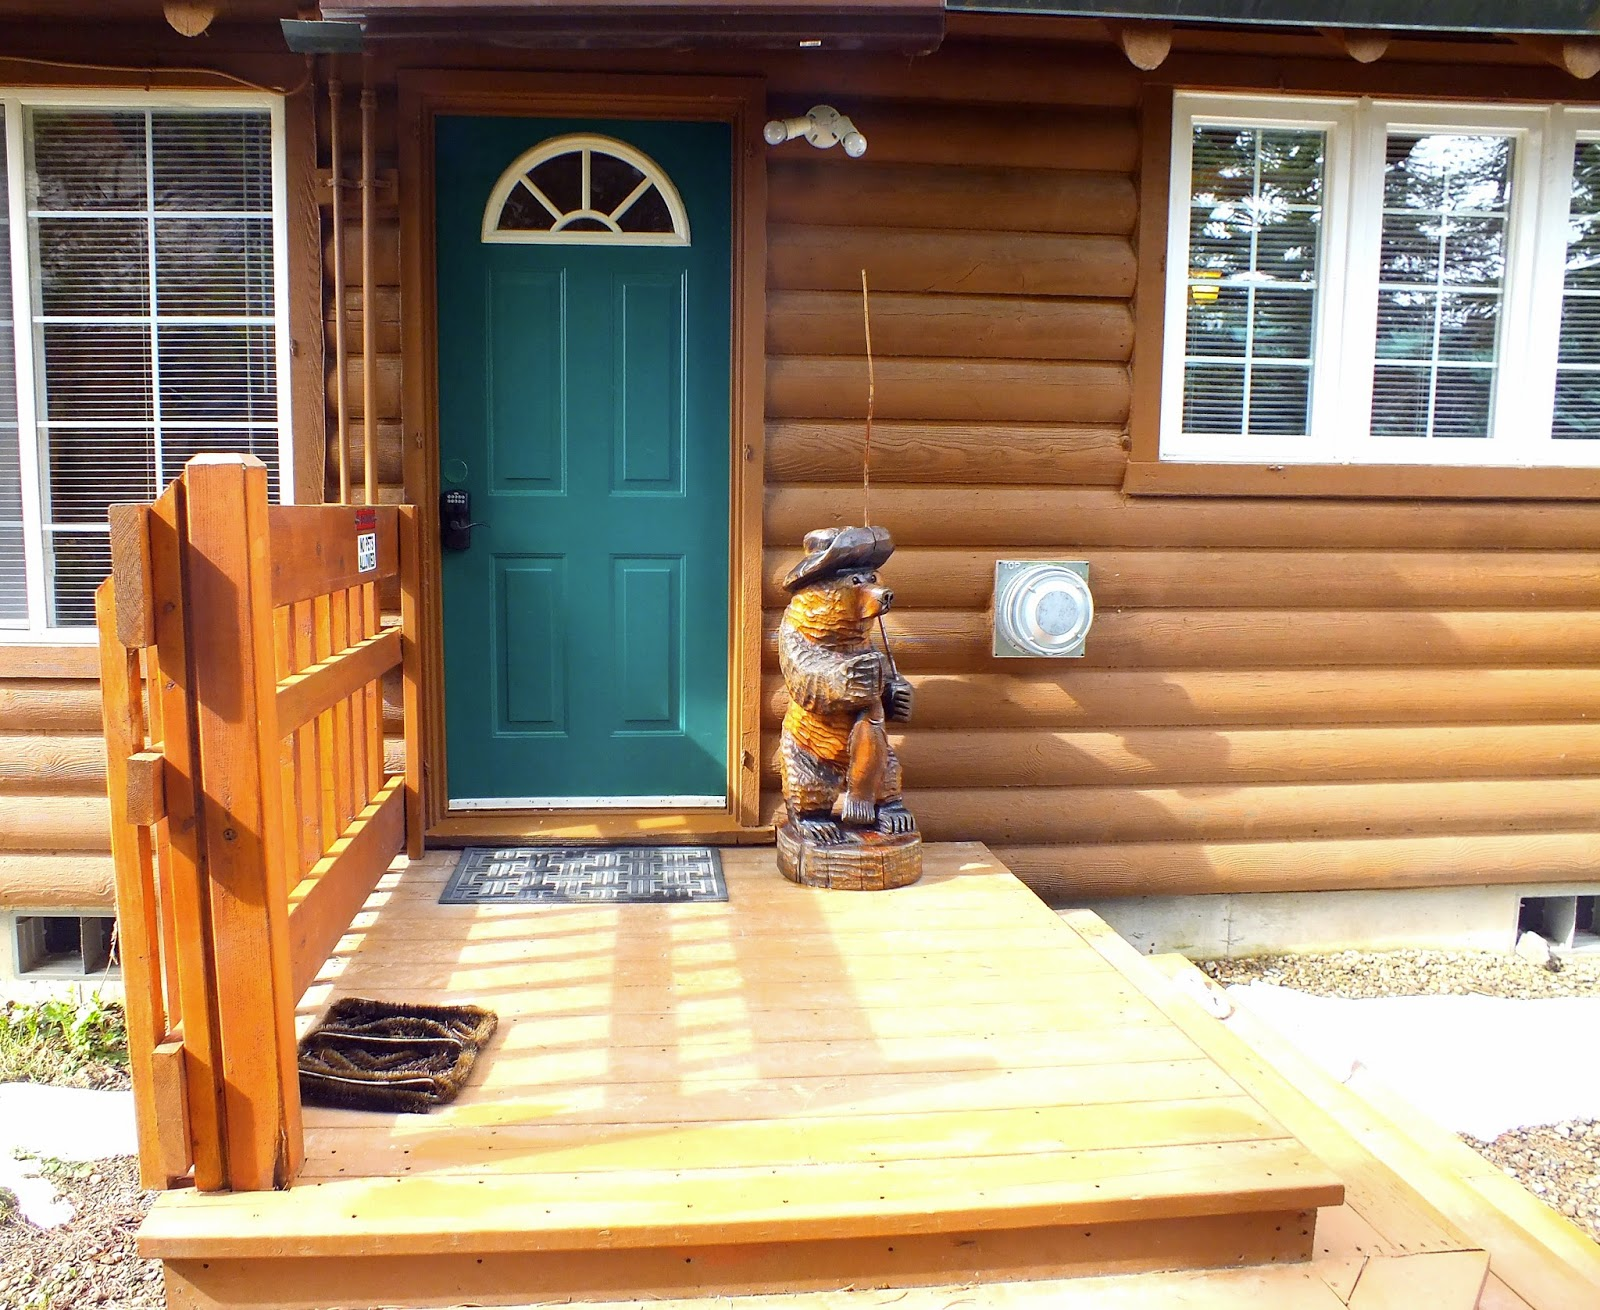 park cabins united rooms for idaho rent island rentals woods cozy the cabin states cottage in